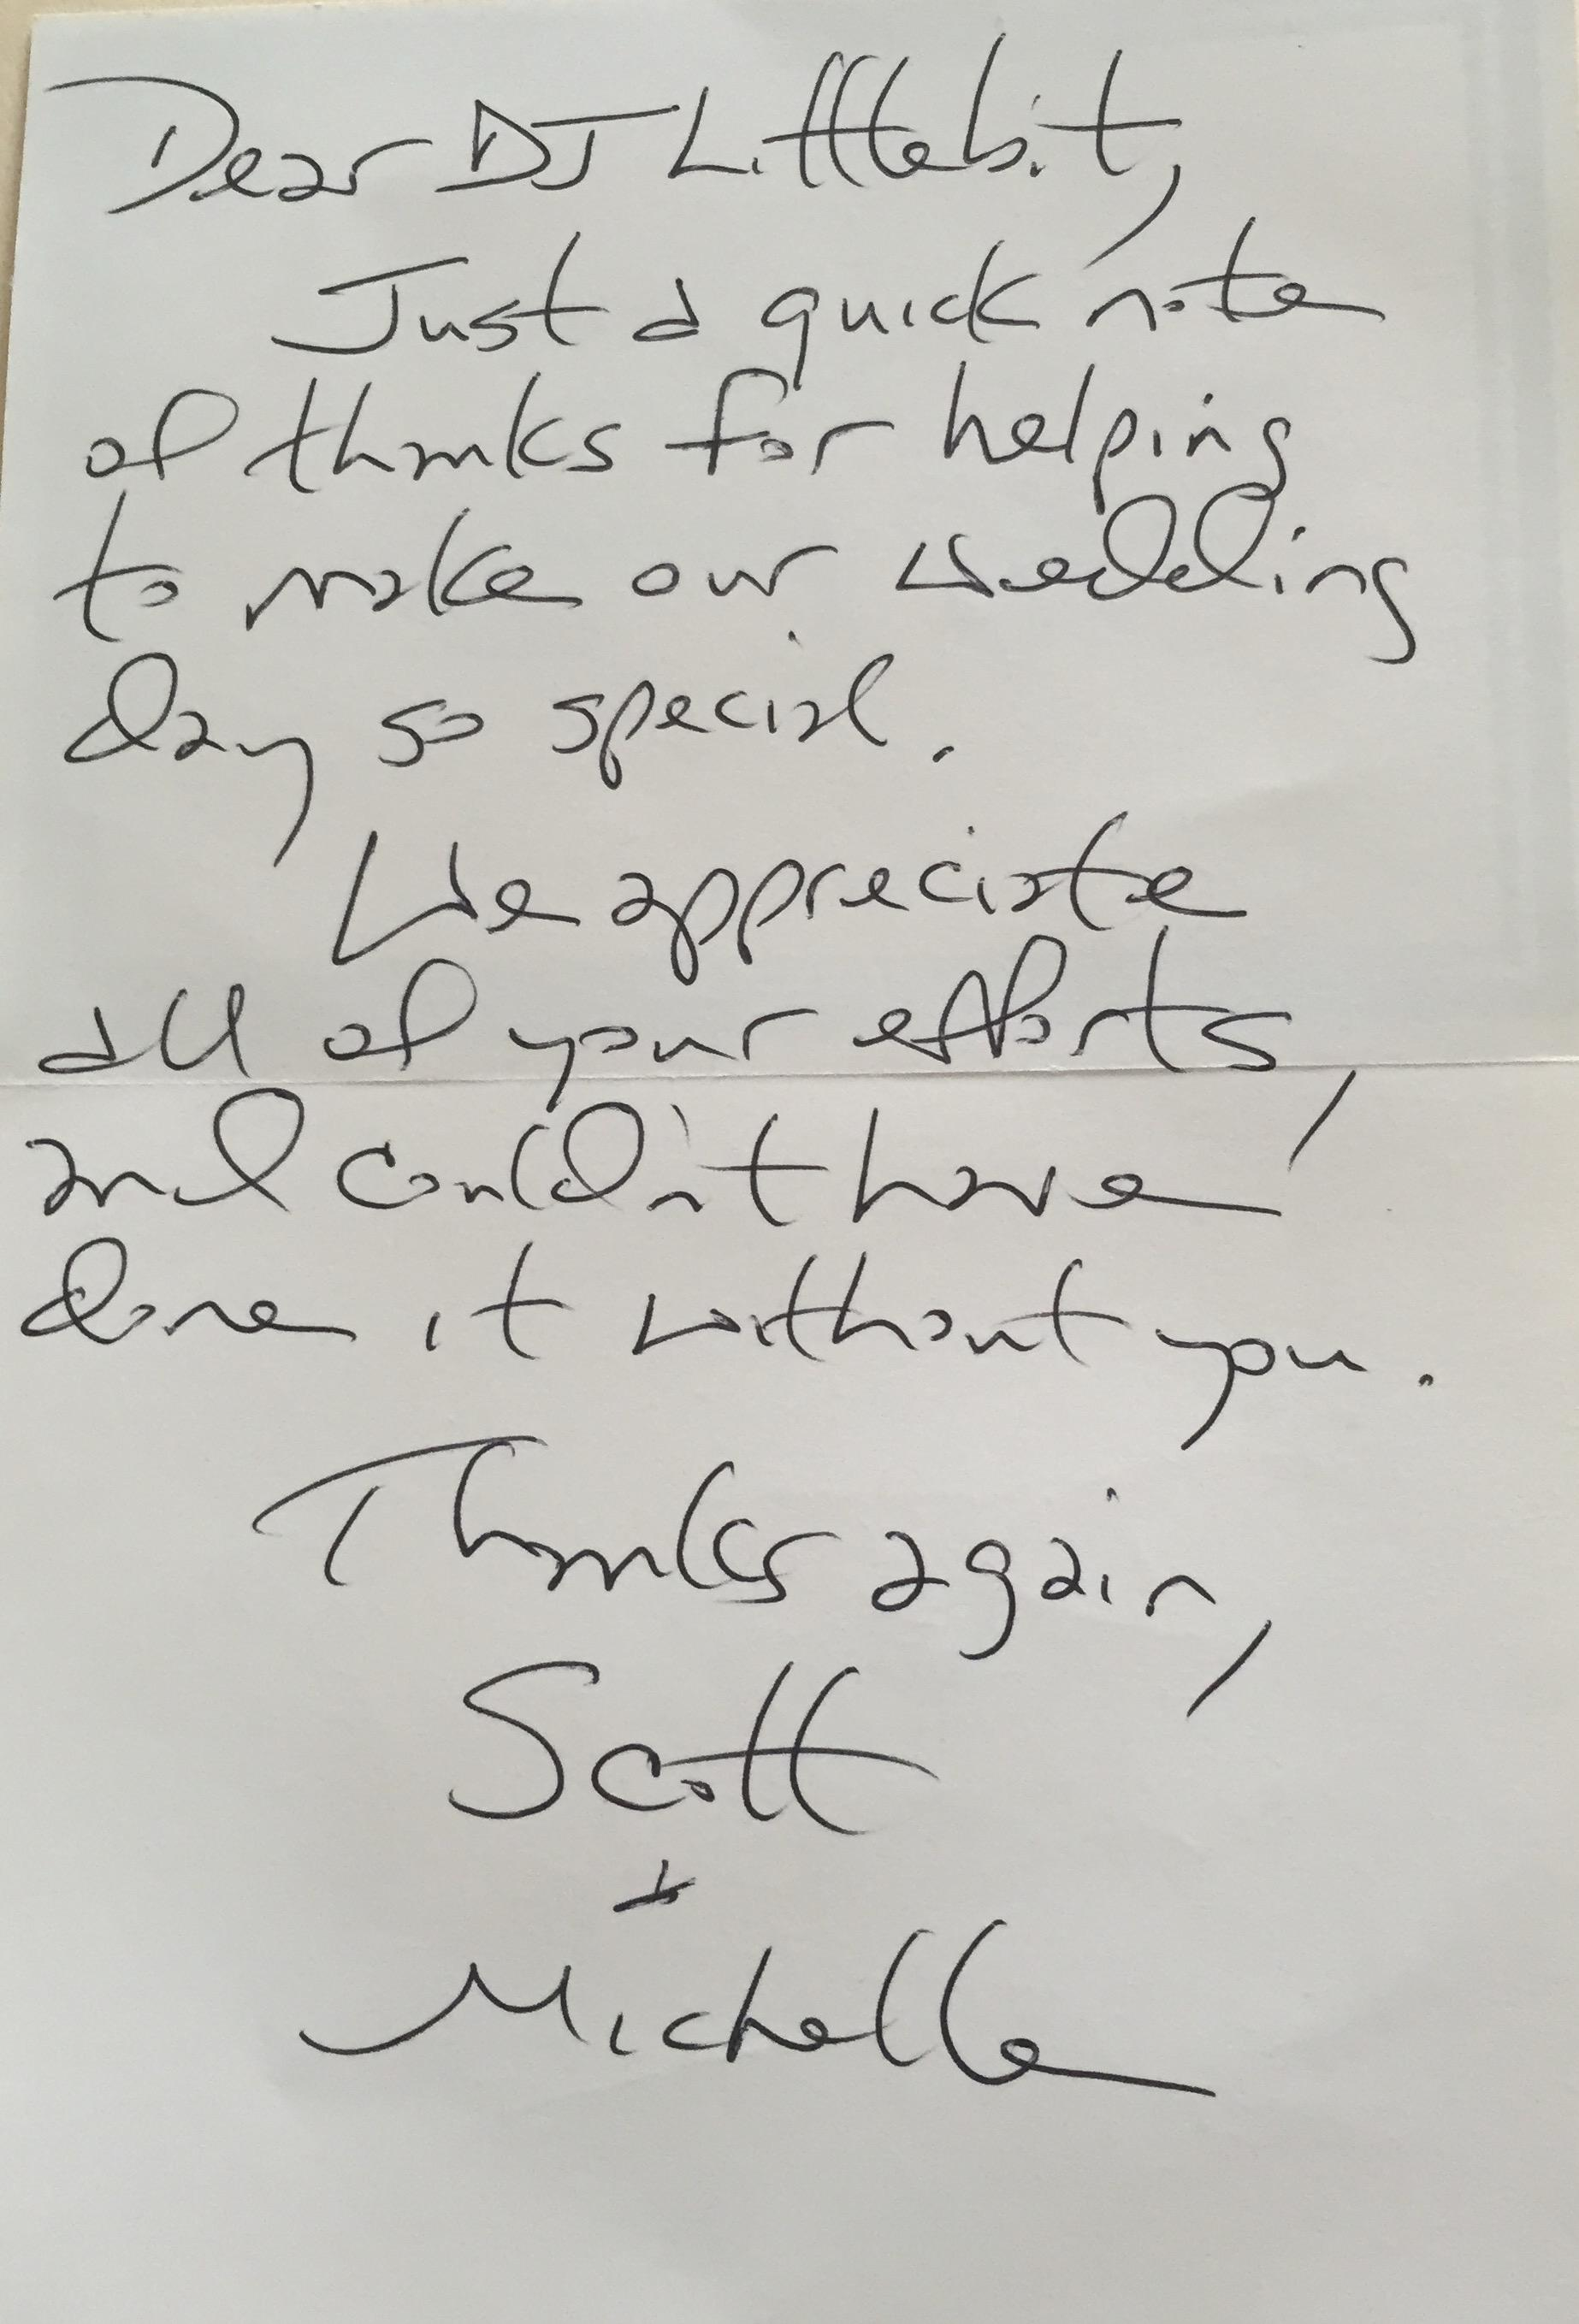 2015-04-25 - Scott and Michelle's Thank You Card